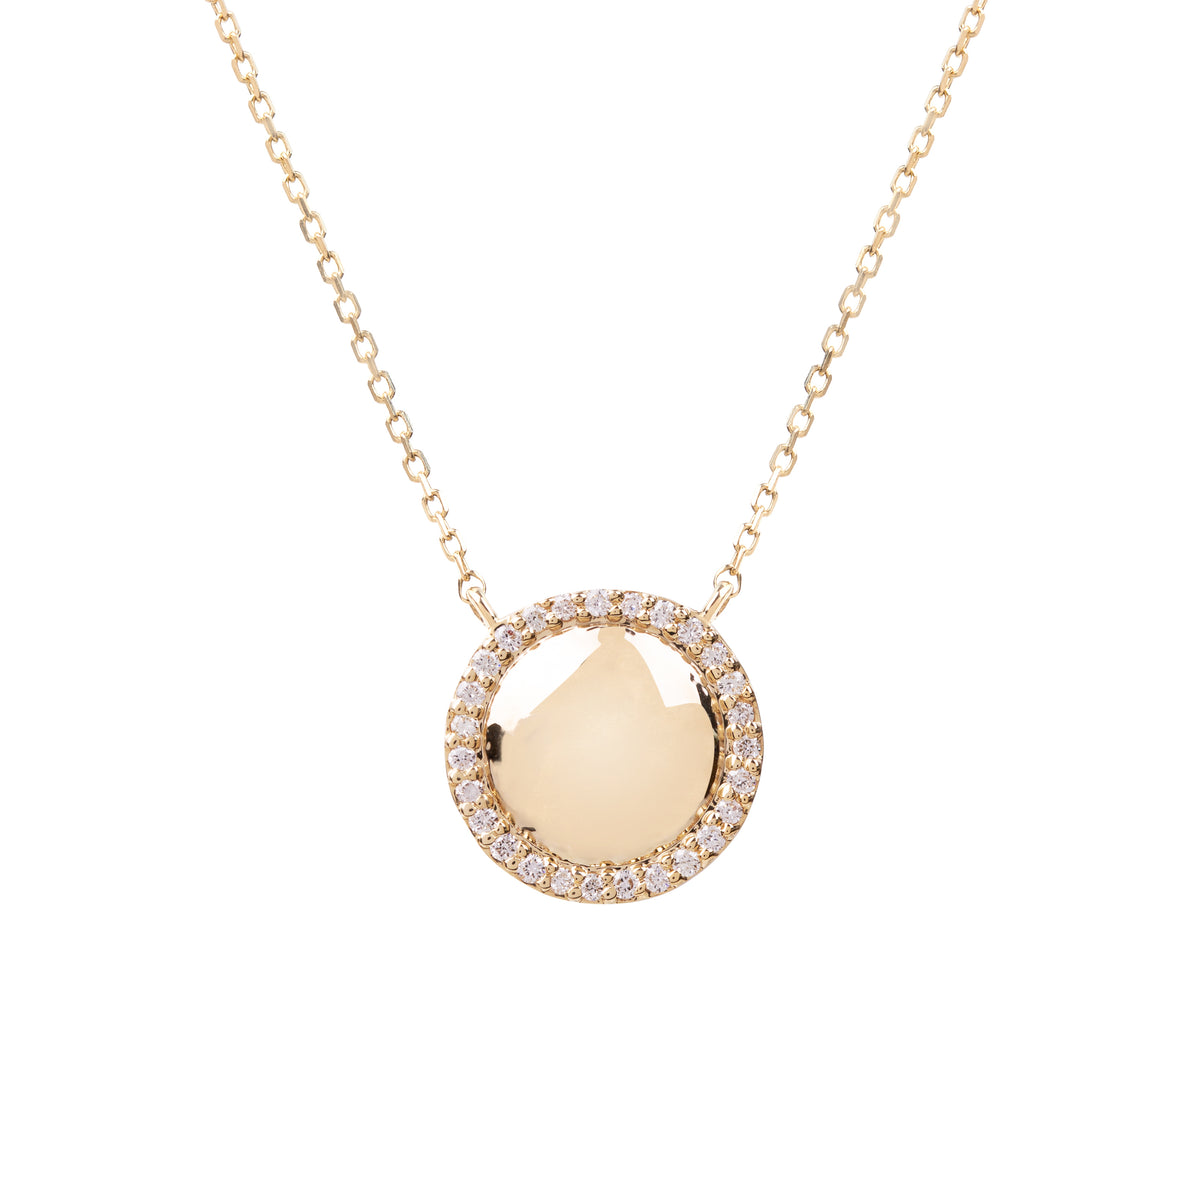 Hera Gold and Diamond Necklace